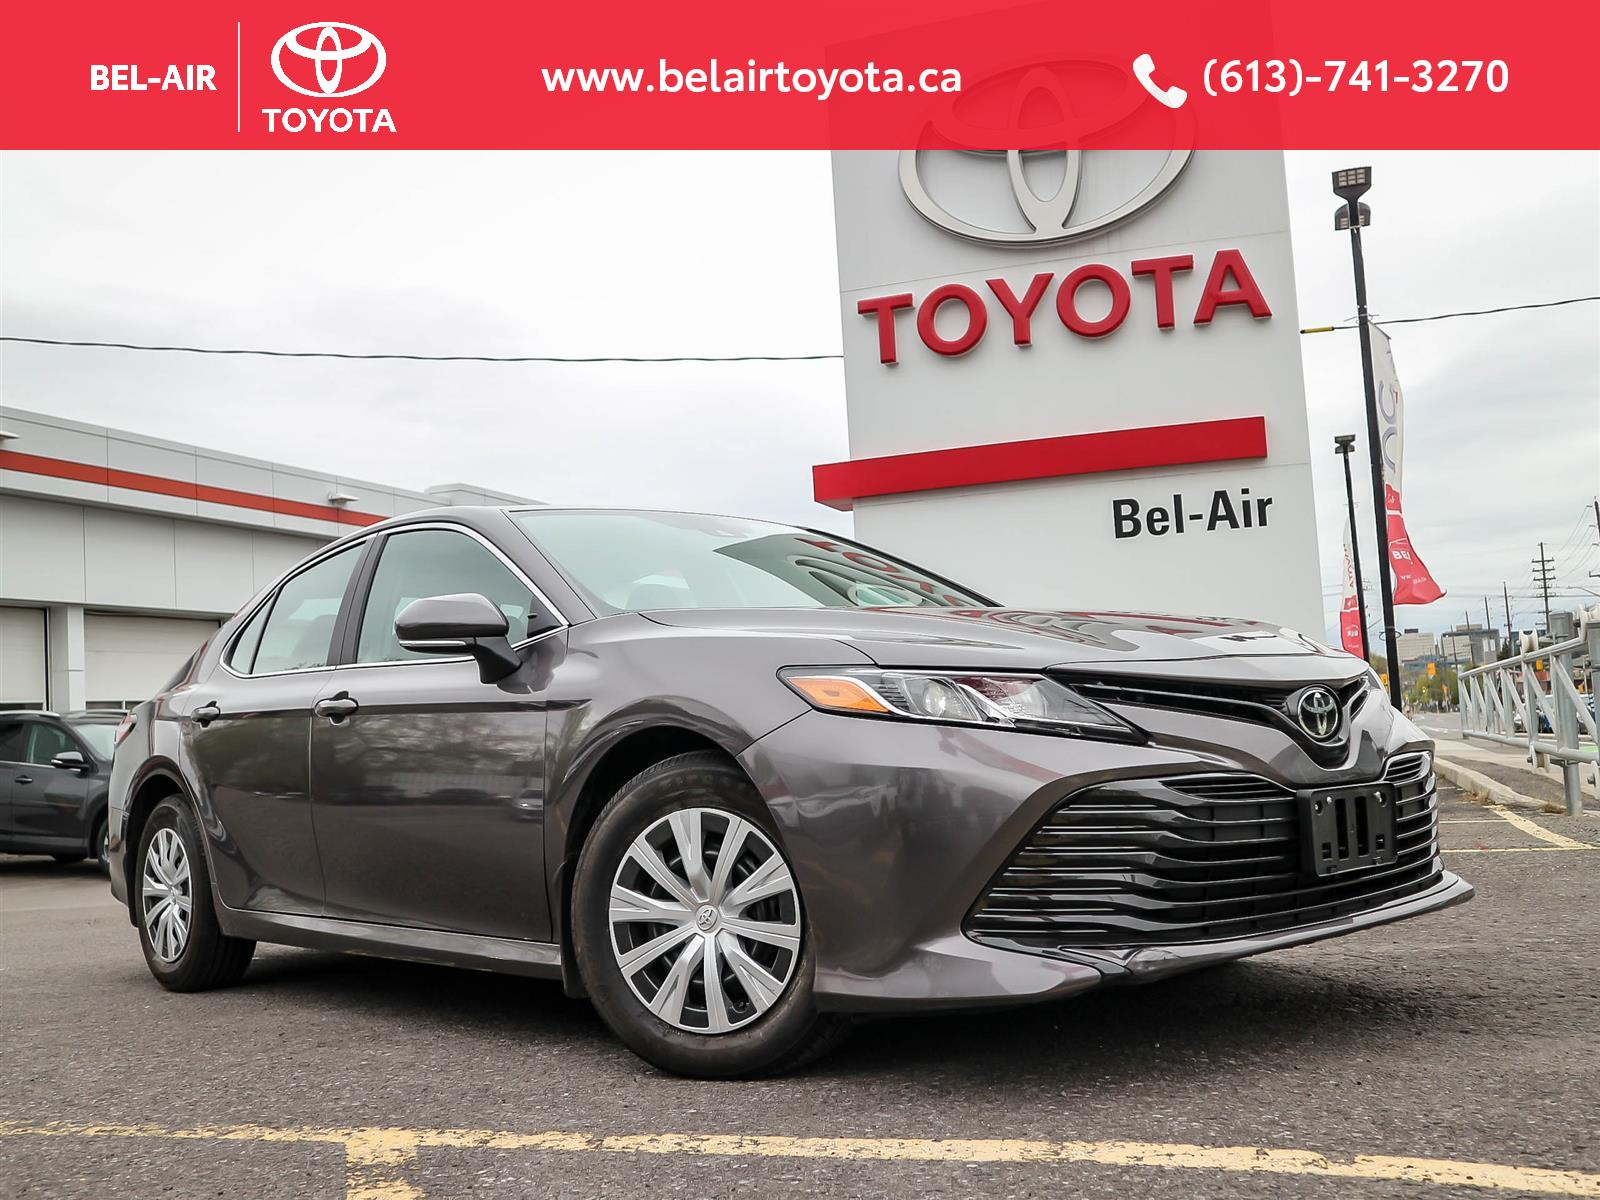 2019 Toyota Camry at Bel-Air Toyota